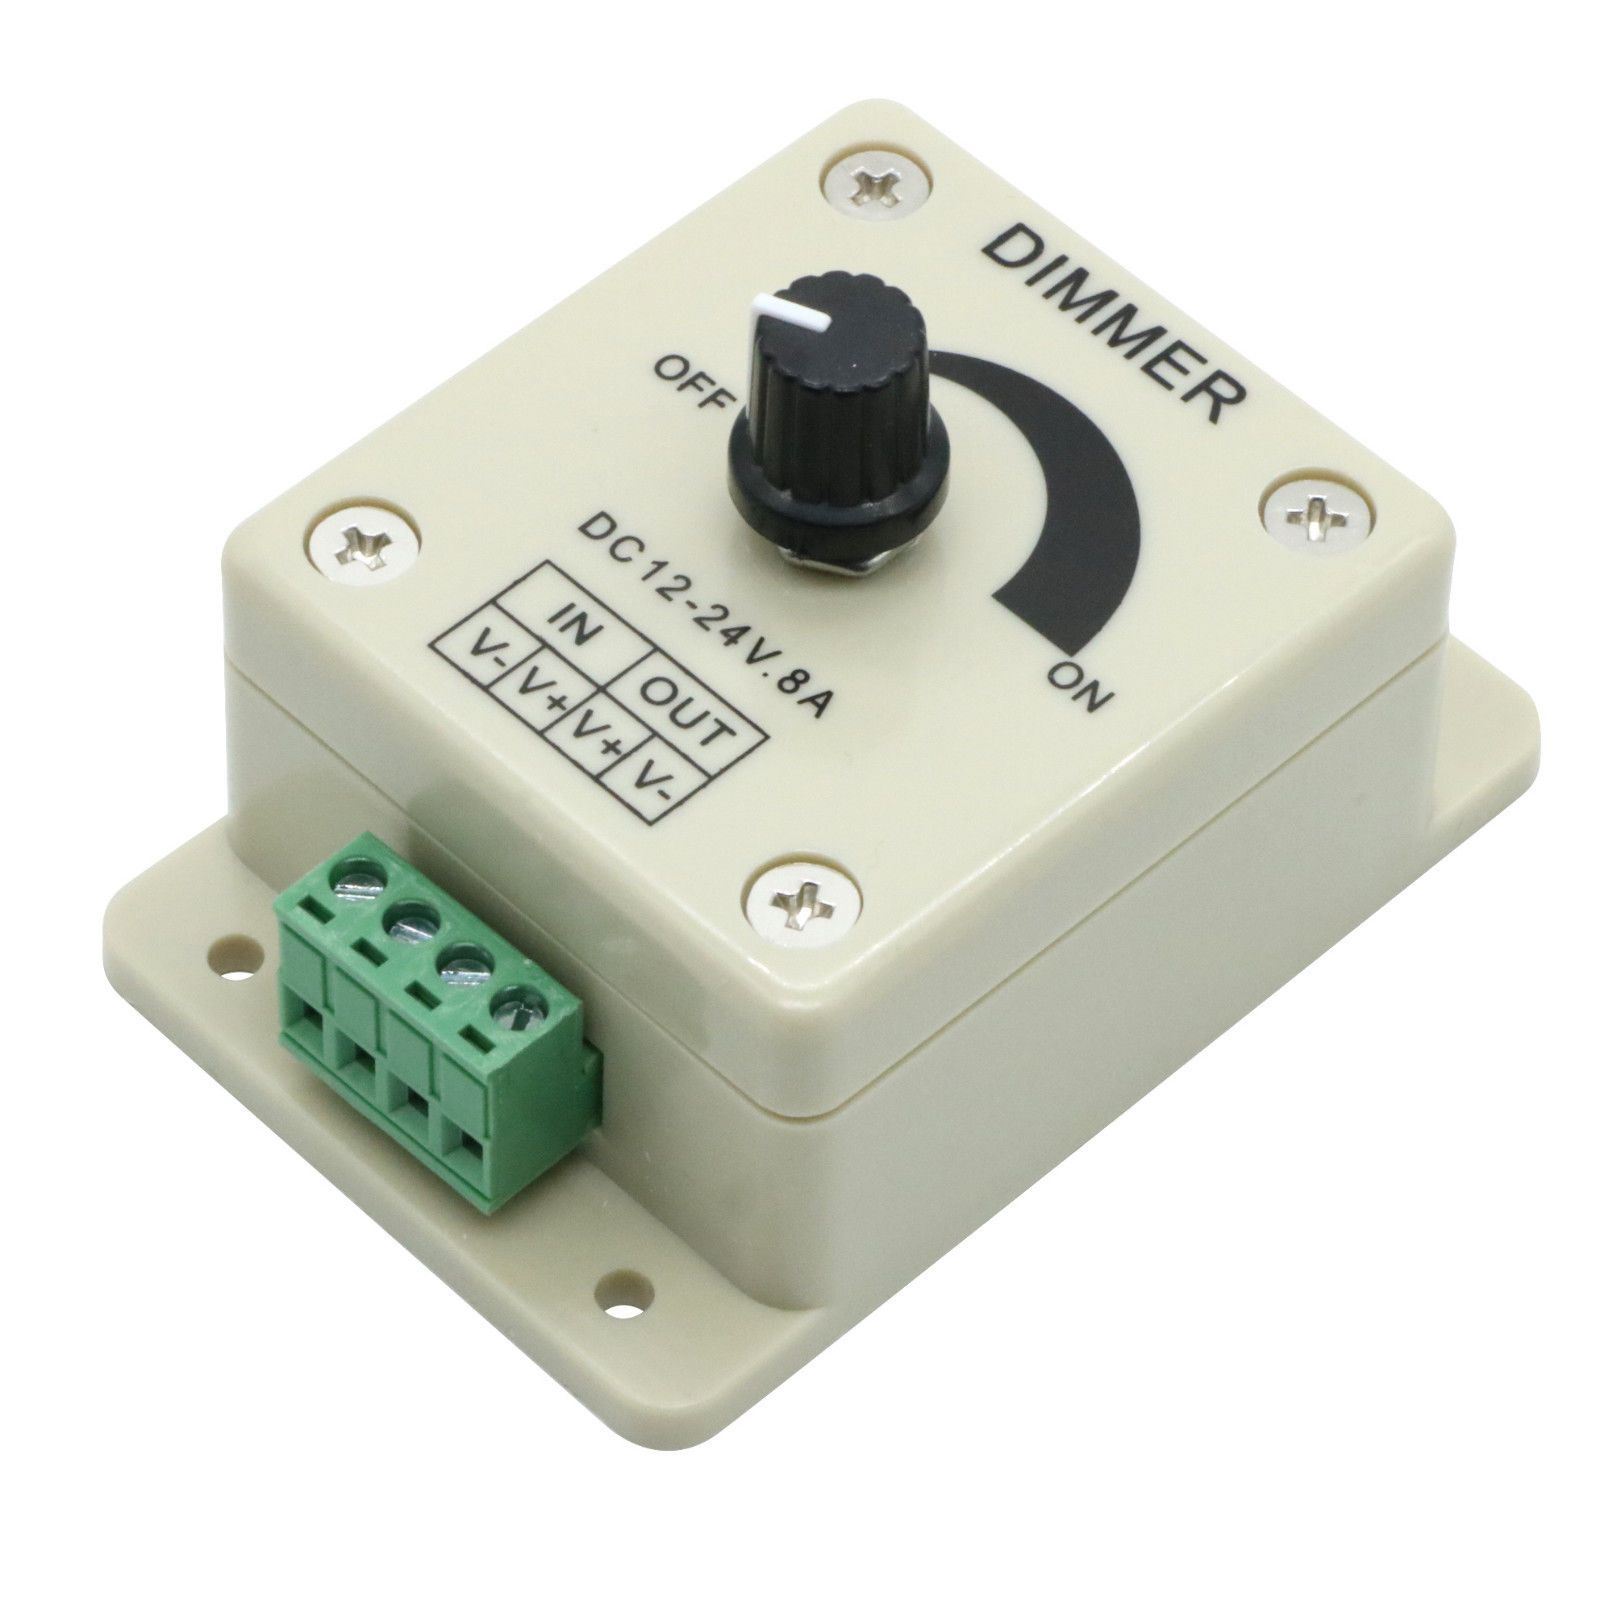 Knob Manual Dimmer Switch Controll For Single Color Led Strip Light Pwm Dc 12v 8a Rf Remote Is A Controller That Can Ebay